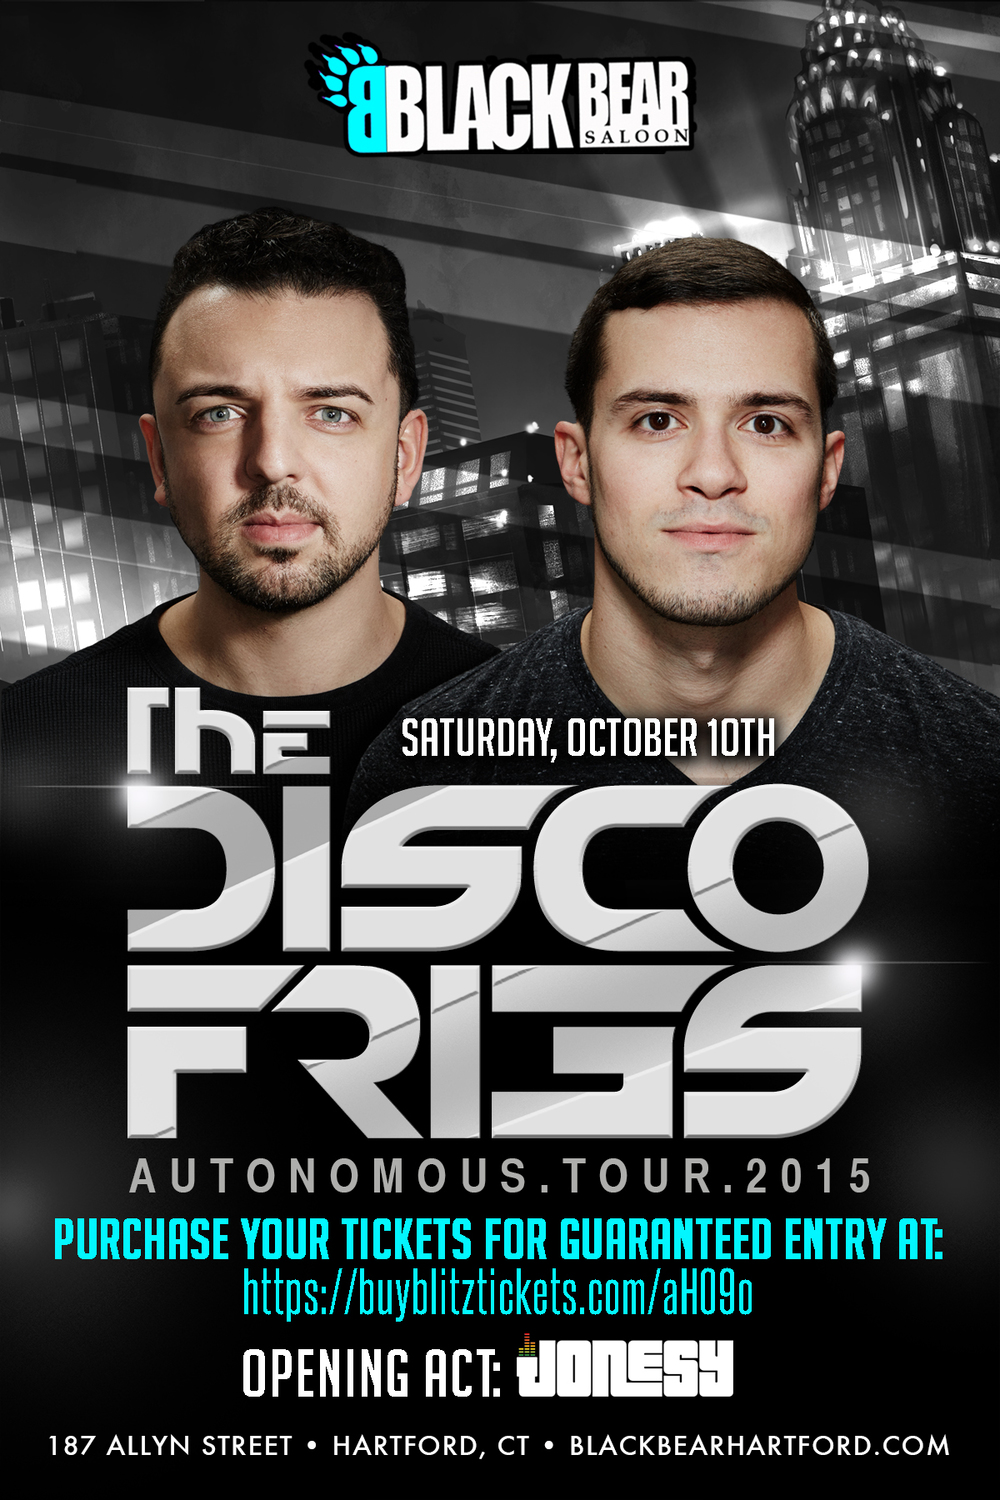 Saturday, Oct. 10th join us at Black Bear Saloon for the highly anticipated performance by The Disco Fries, as past of their 2015 Autonomous Tour.  Opening set by yours truly begins at 9pm.  For Tickets visit: https://buyblitztickets.com/aH09o